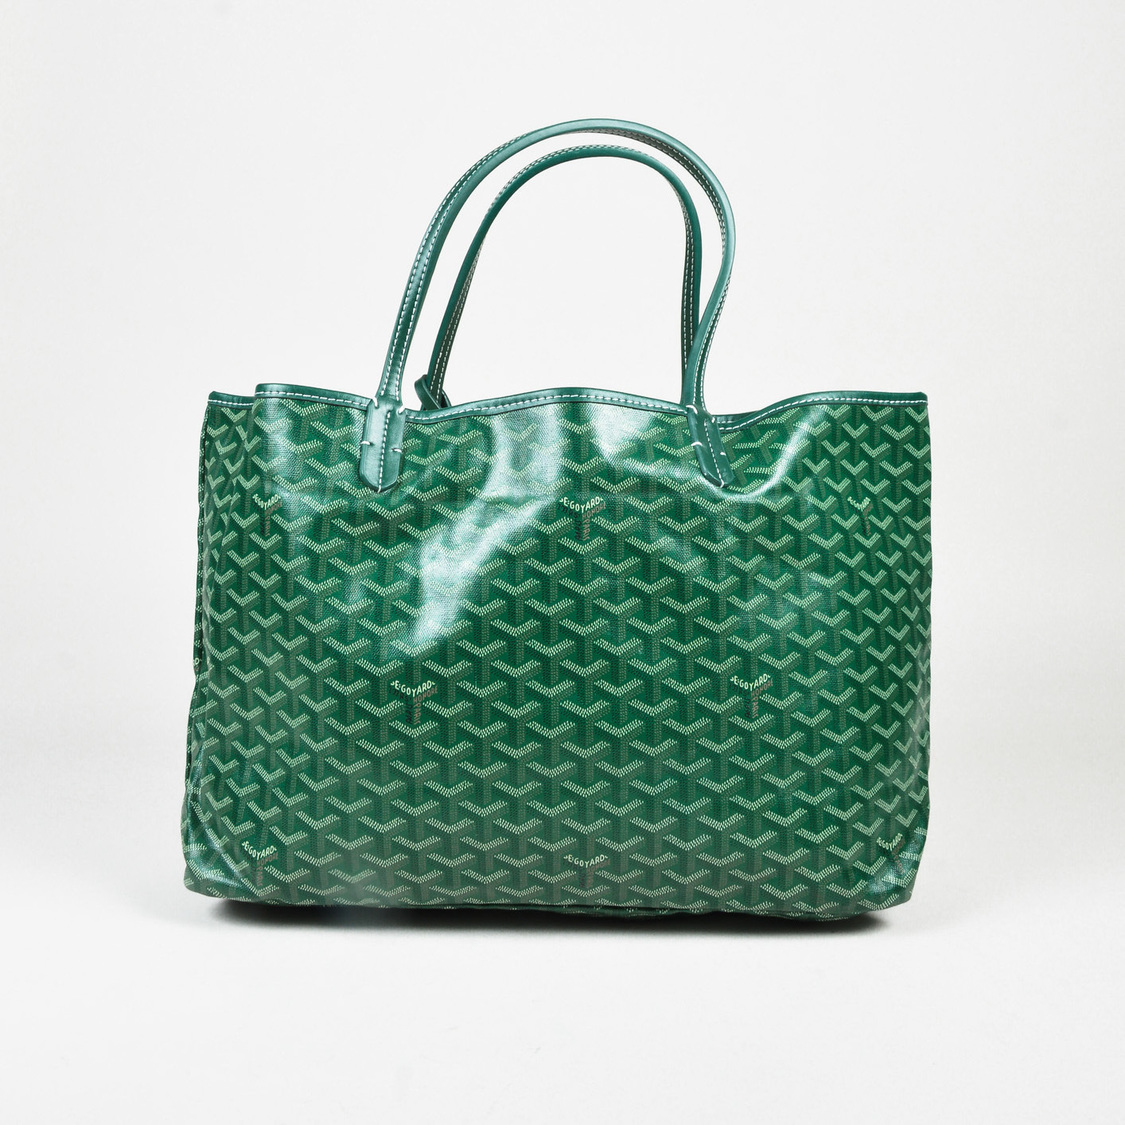 Goyard Green Goyard Chevron Coated Canvas St Louis Tote GM Bag - How to create a paypal invoice goyard online store